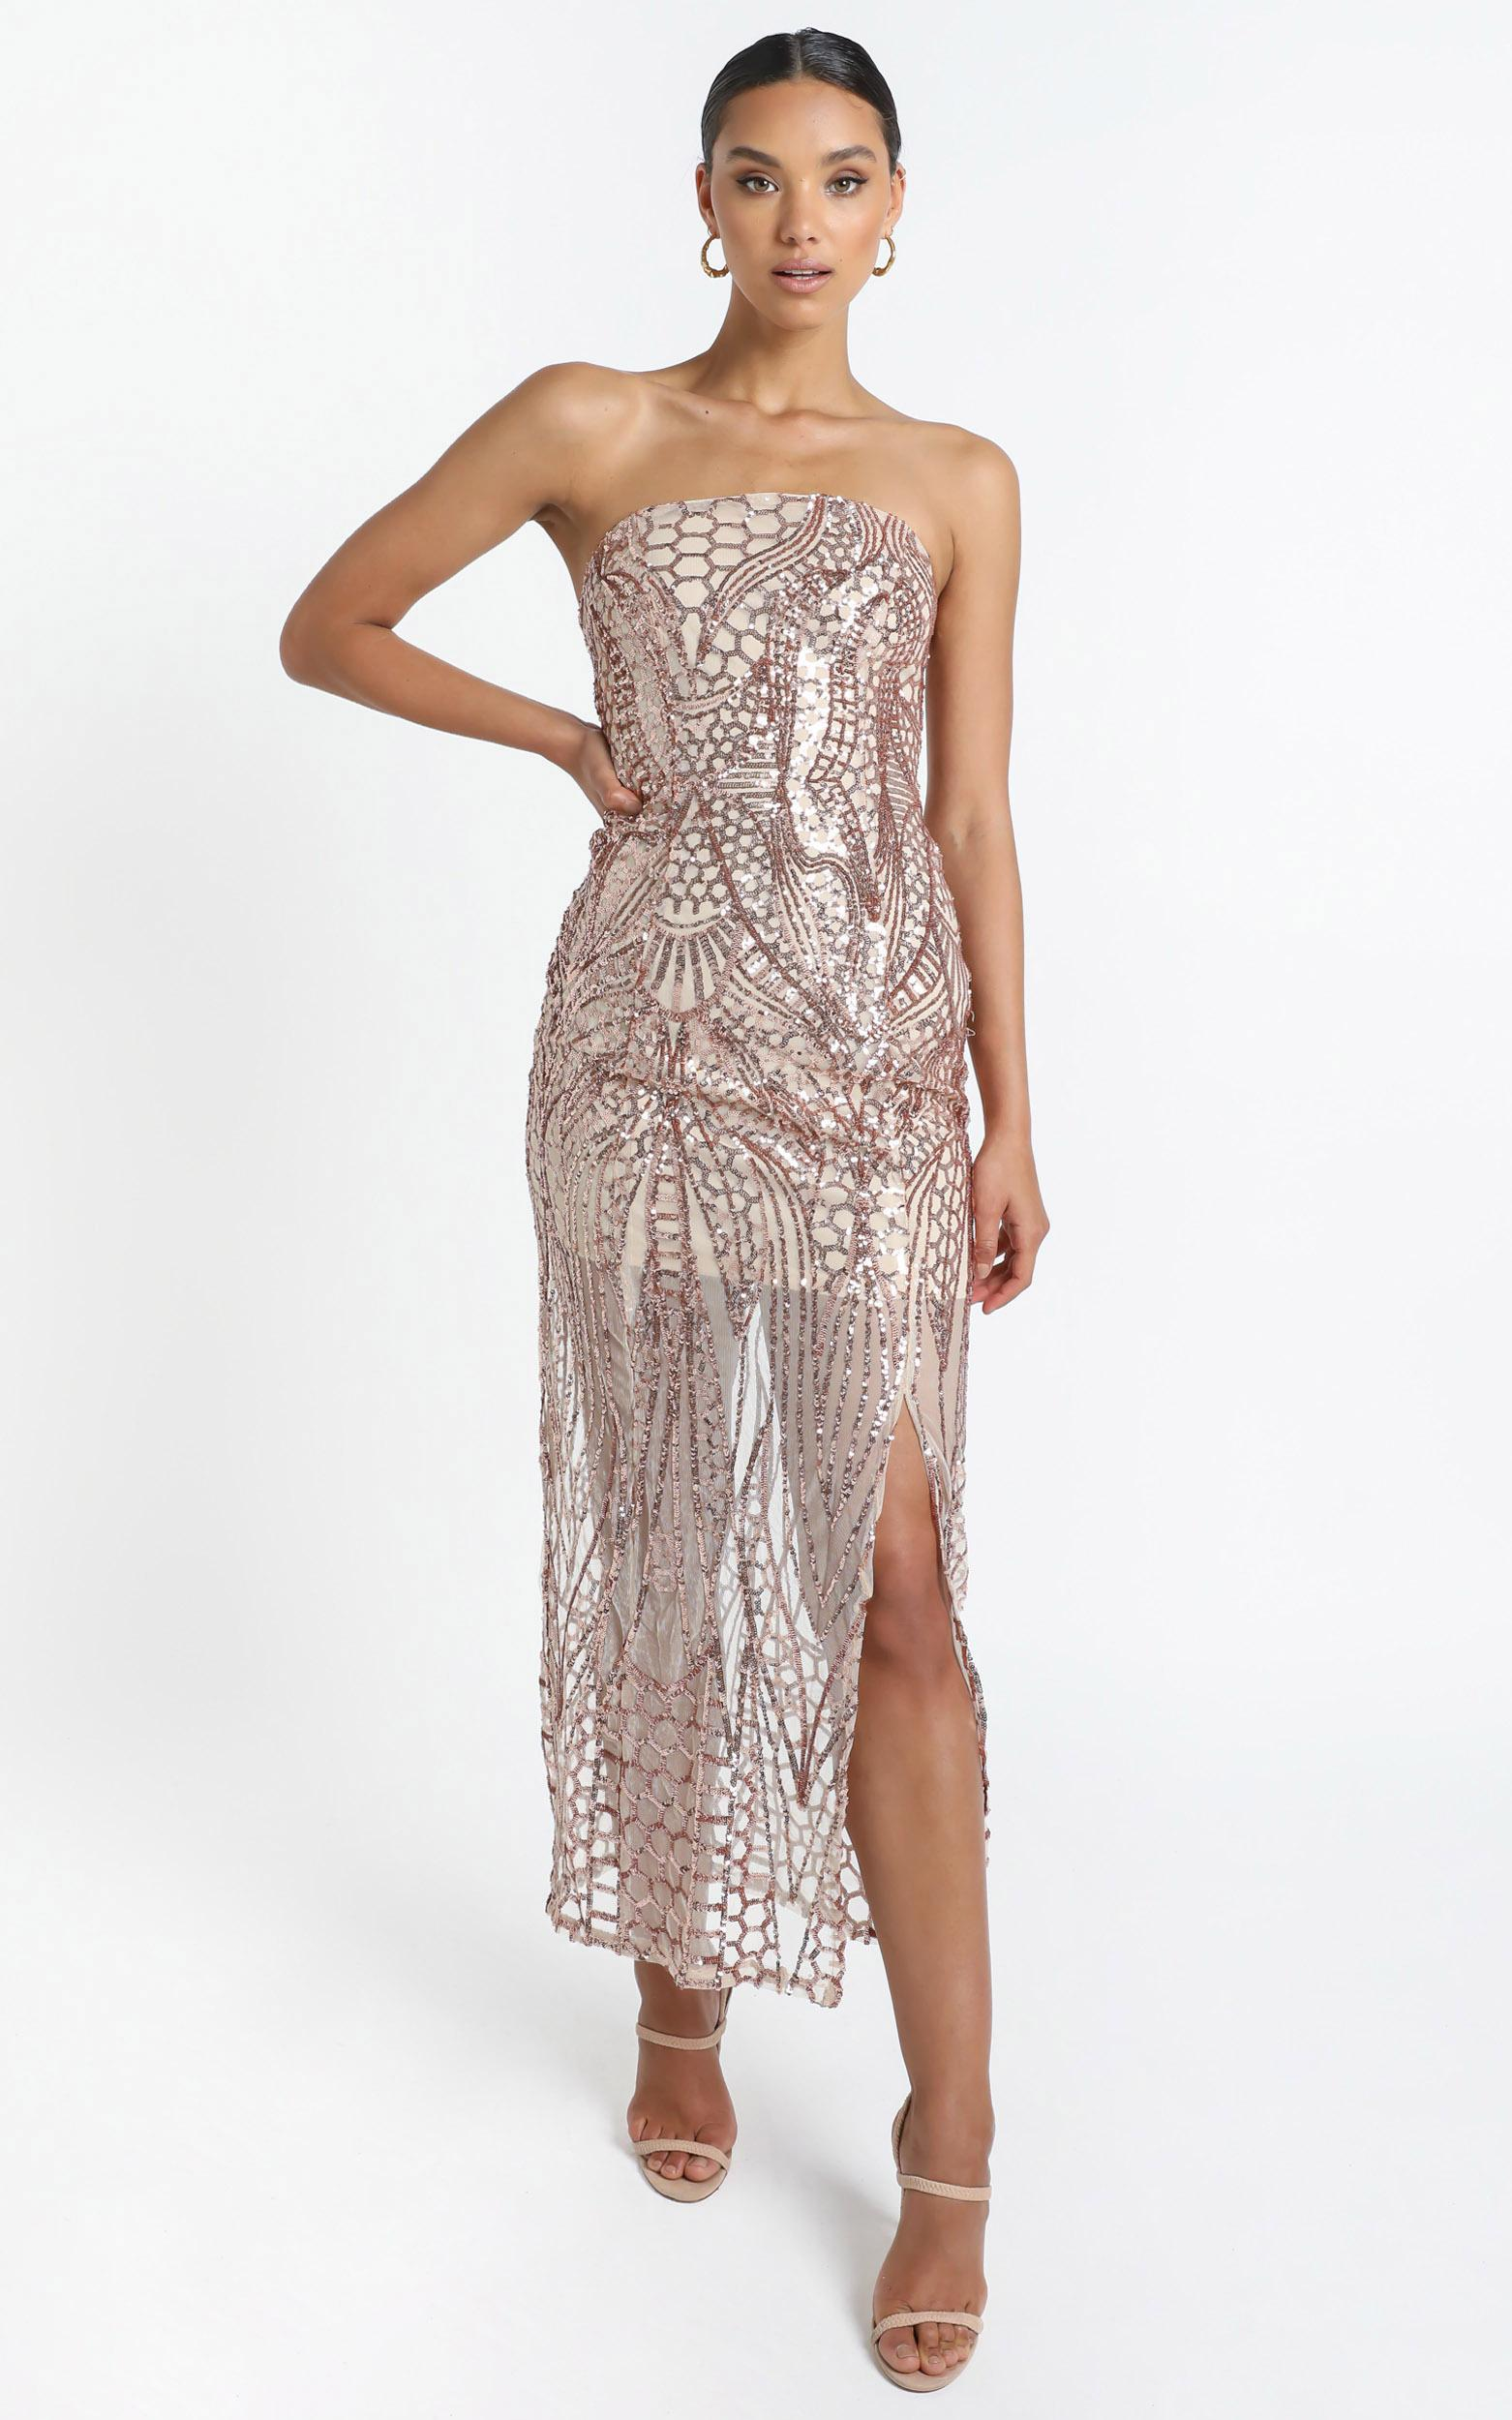 American Hero Maxi Dress In Rose Gold Sequin - 4 (XXS), Rose Gold, hi-res image number null